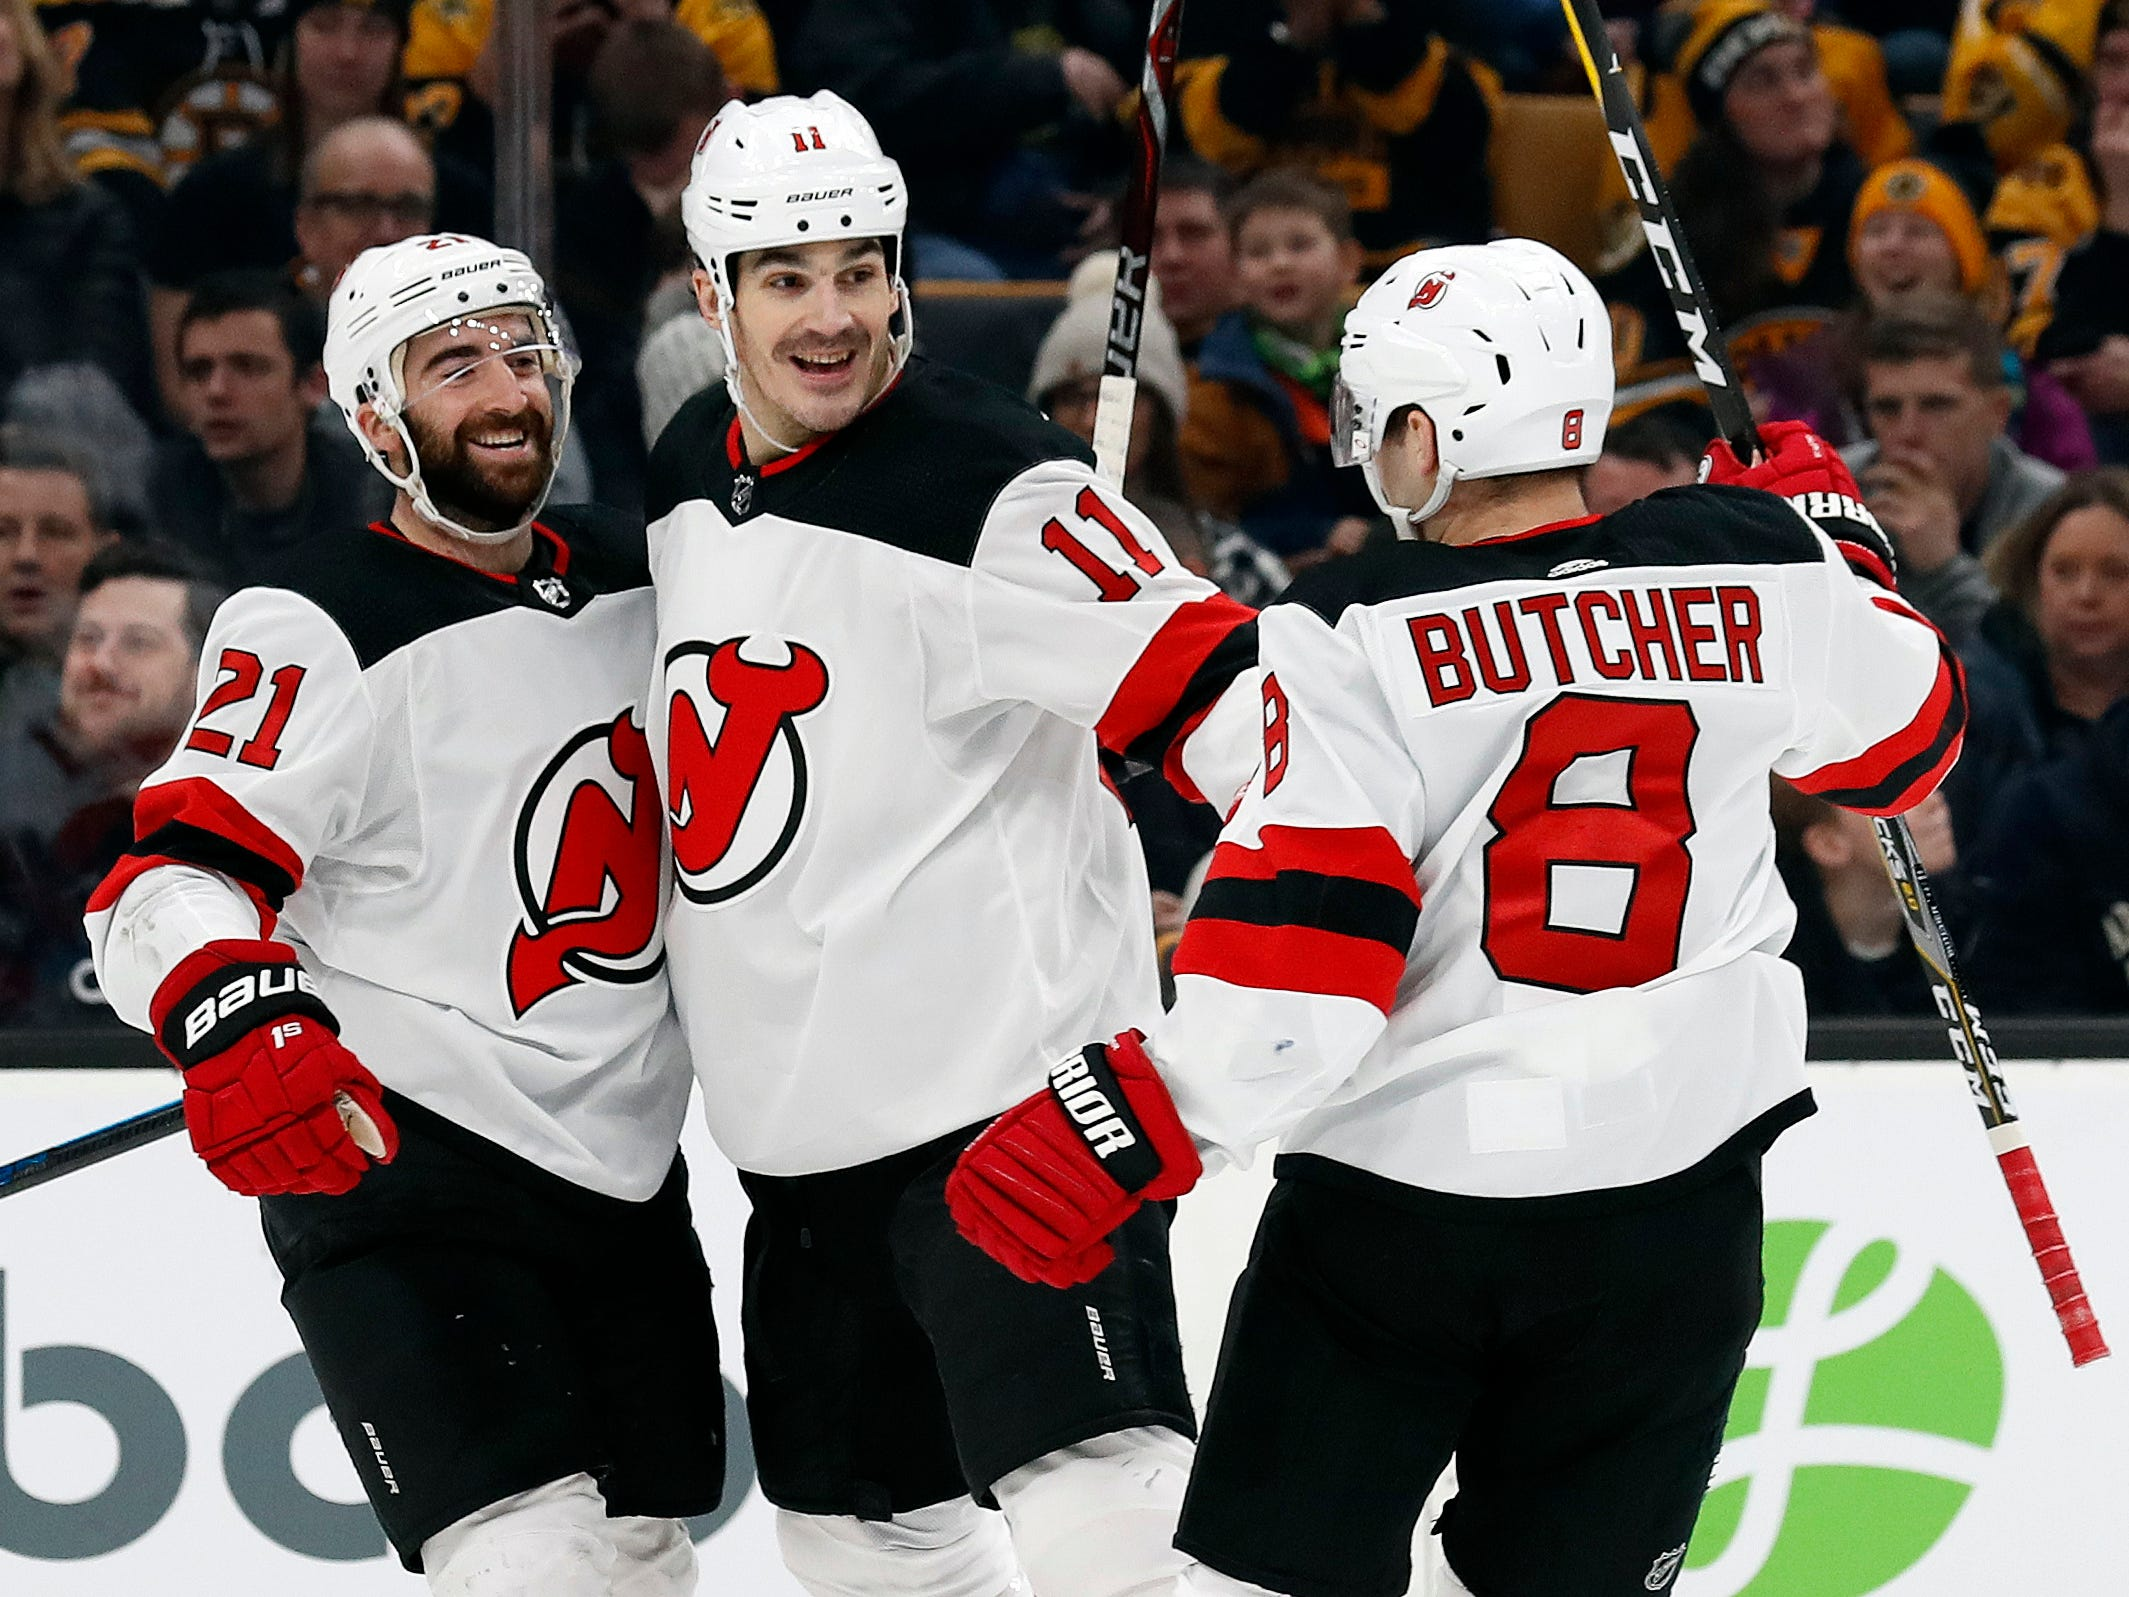 Dec 27, 2018; Boston, MA, USA; New Jersey Devils right wing Kyle Palmieri (21) celebrates his goal with center Brian Boyle (11) and defenseman Will Butcher (8) during the first period against the Boston Bruins at TD Garden.